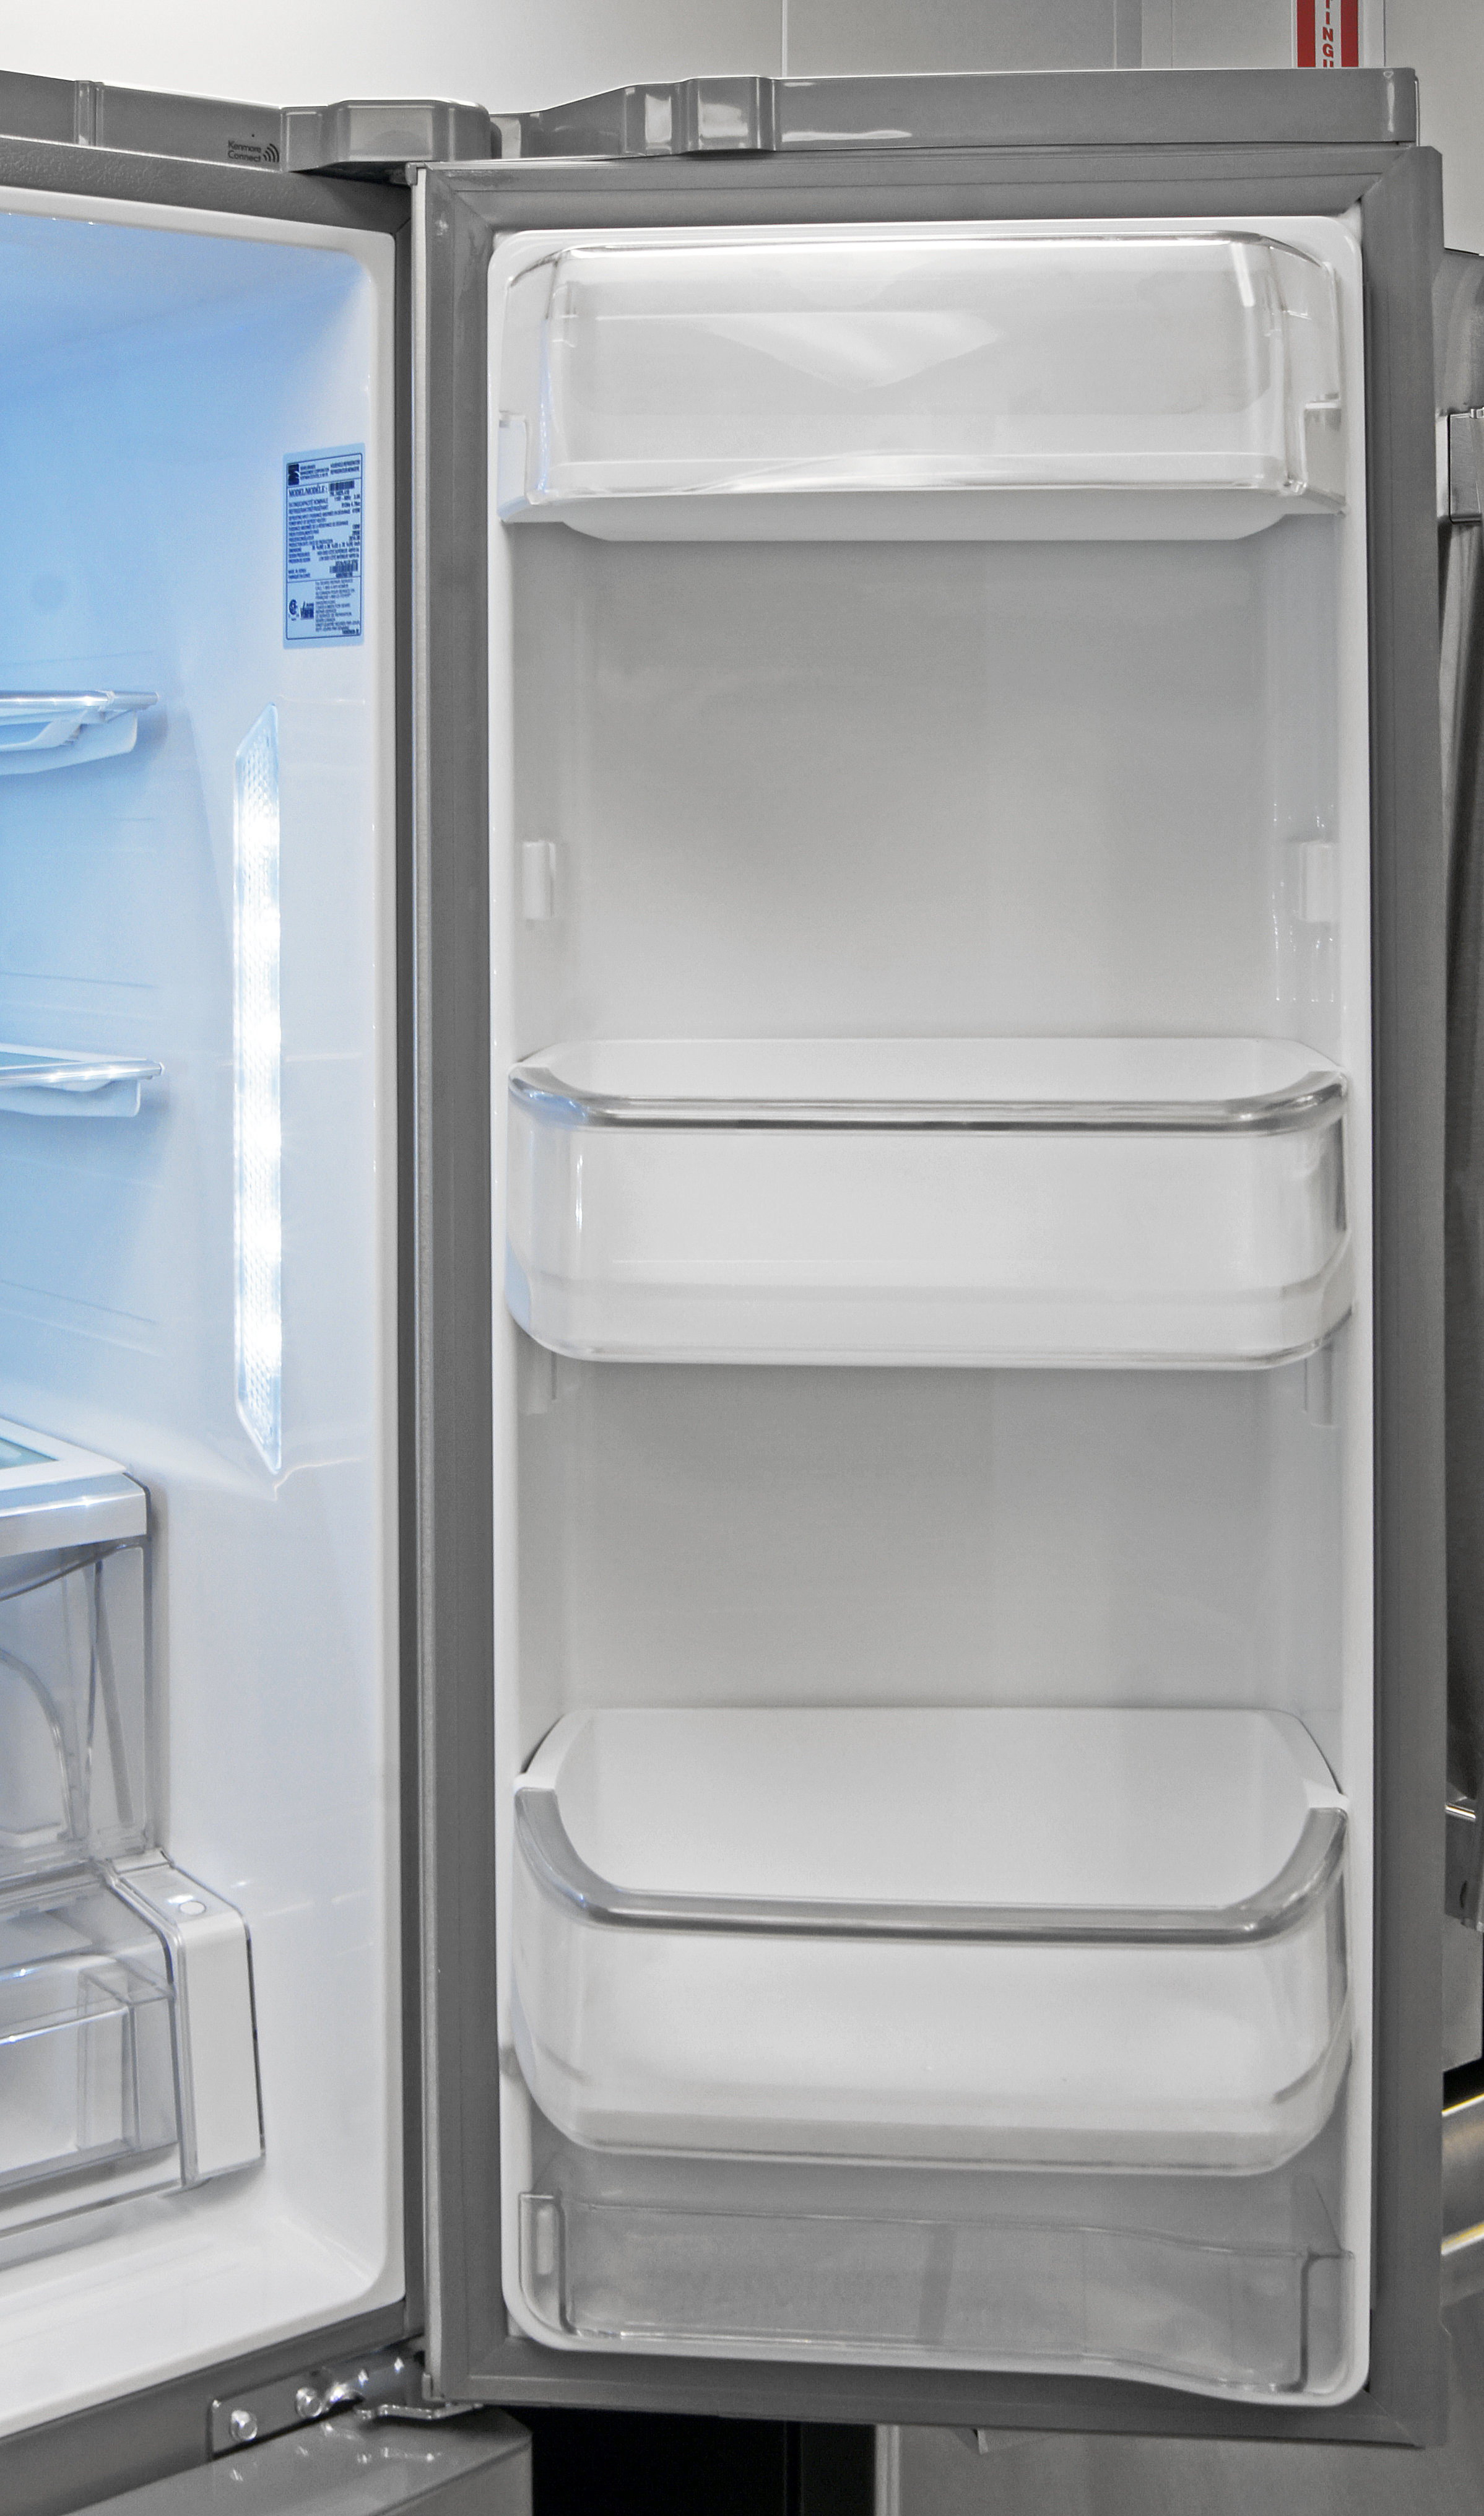 The Kenmore Elite 74025's right door offers adjustable gallon-sized storage.